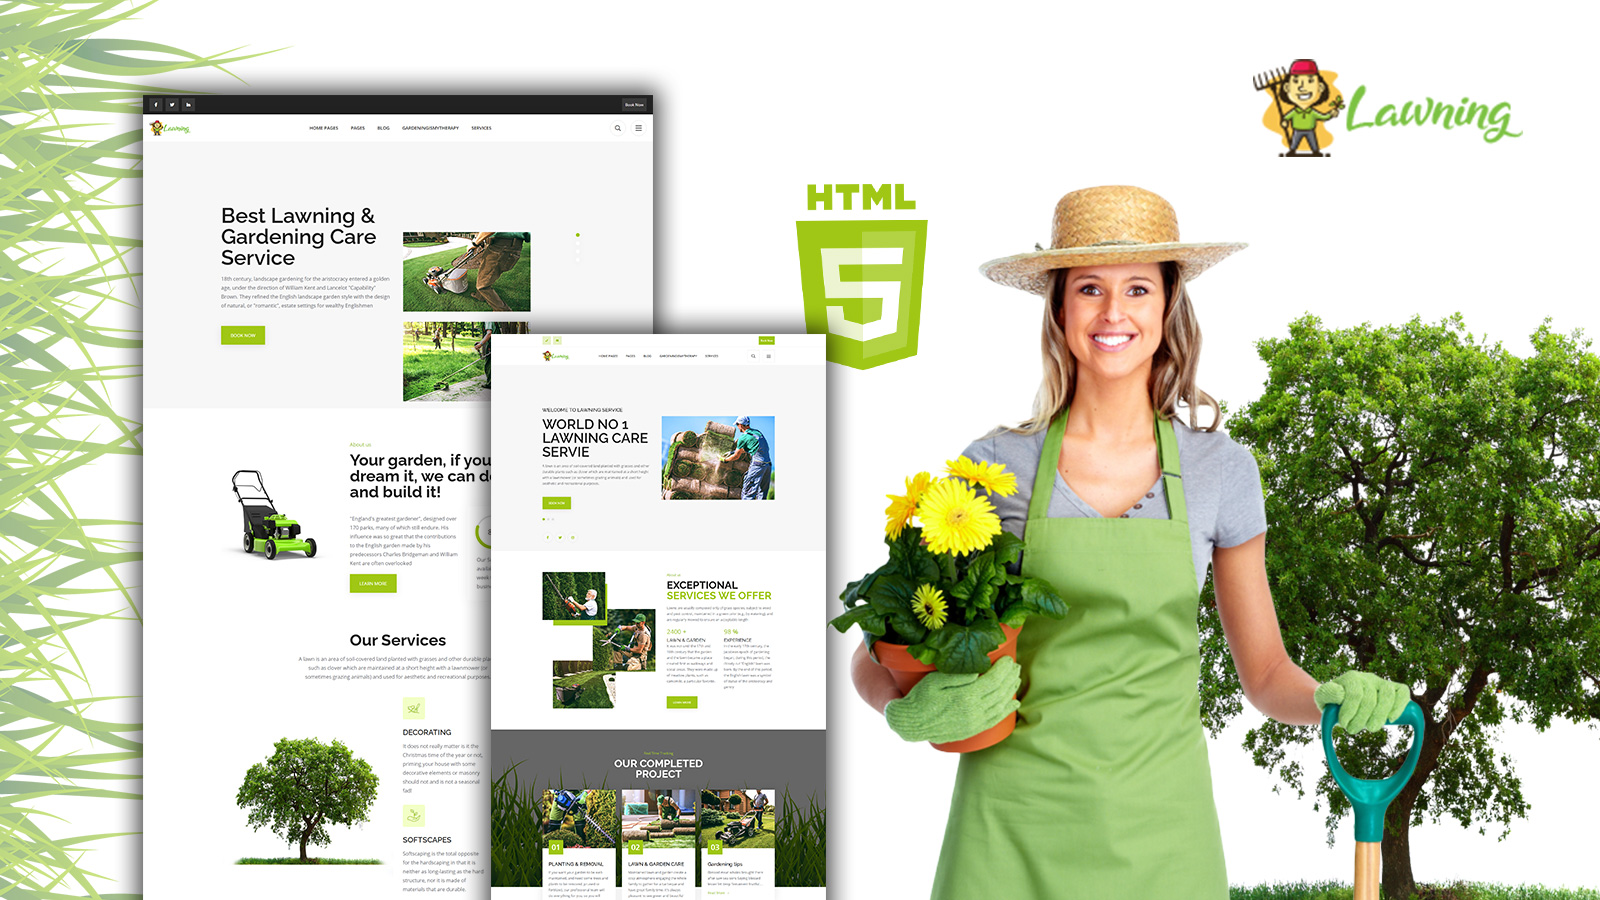 Lawning - Lawn Mowing Service HTML Template